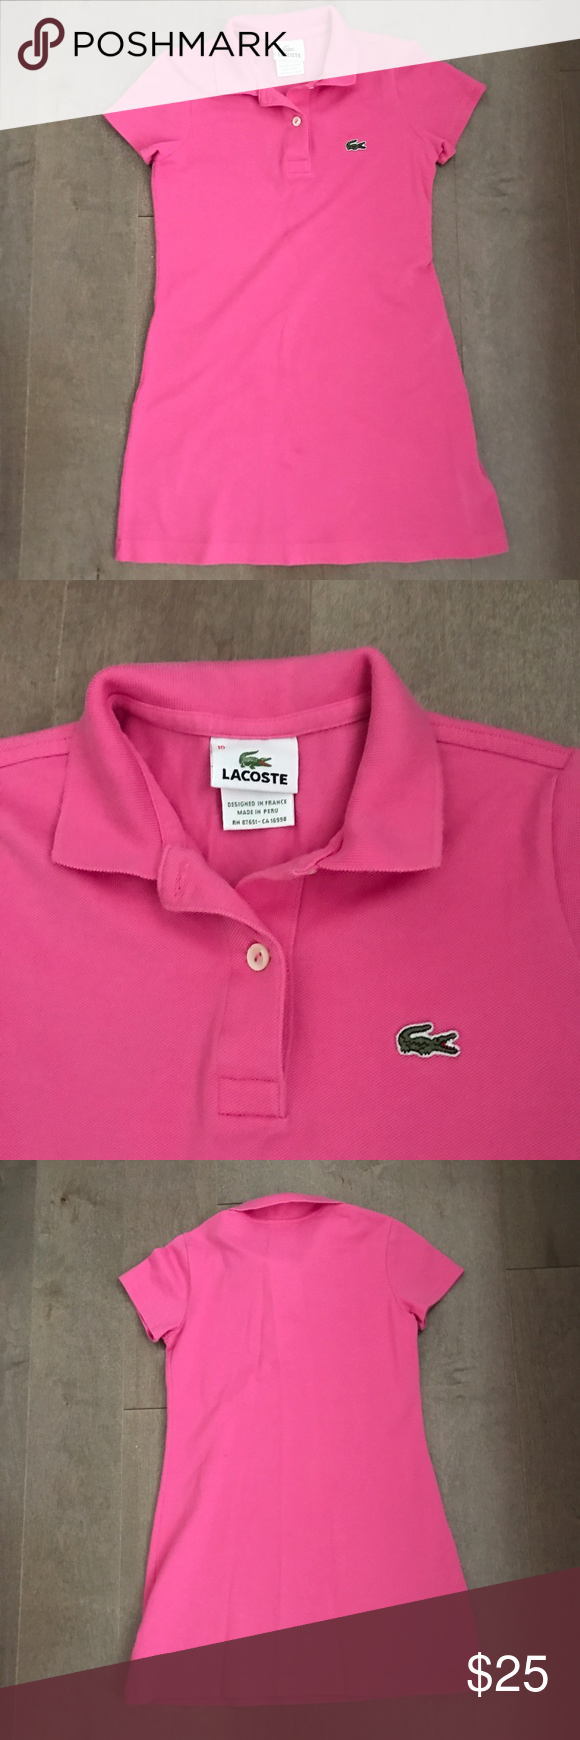 Lacoste girls polo dress lacoste polos and size